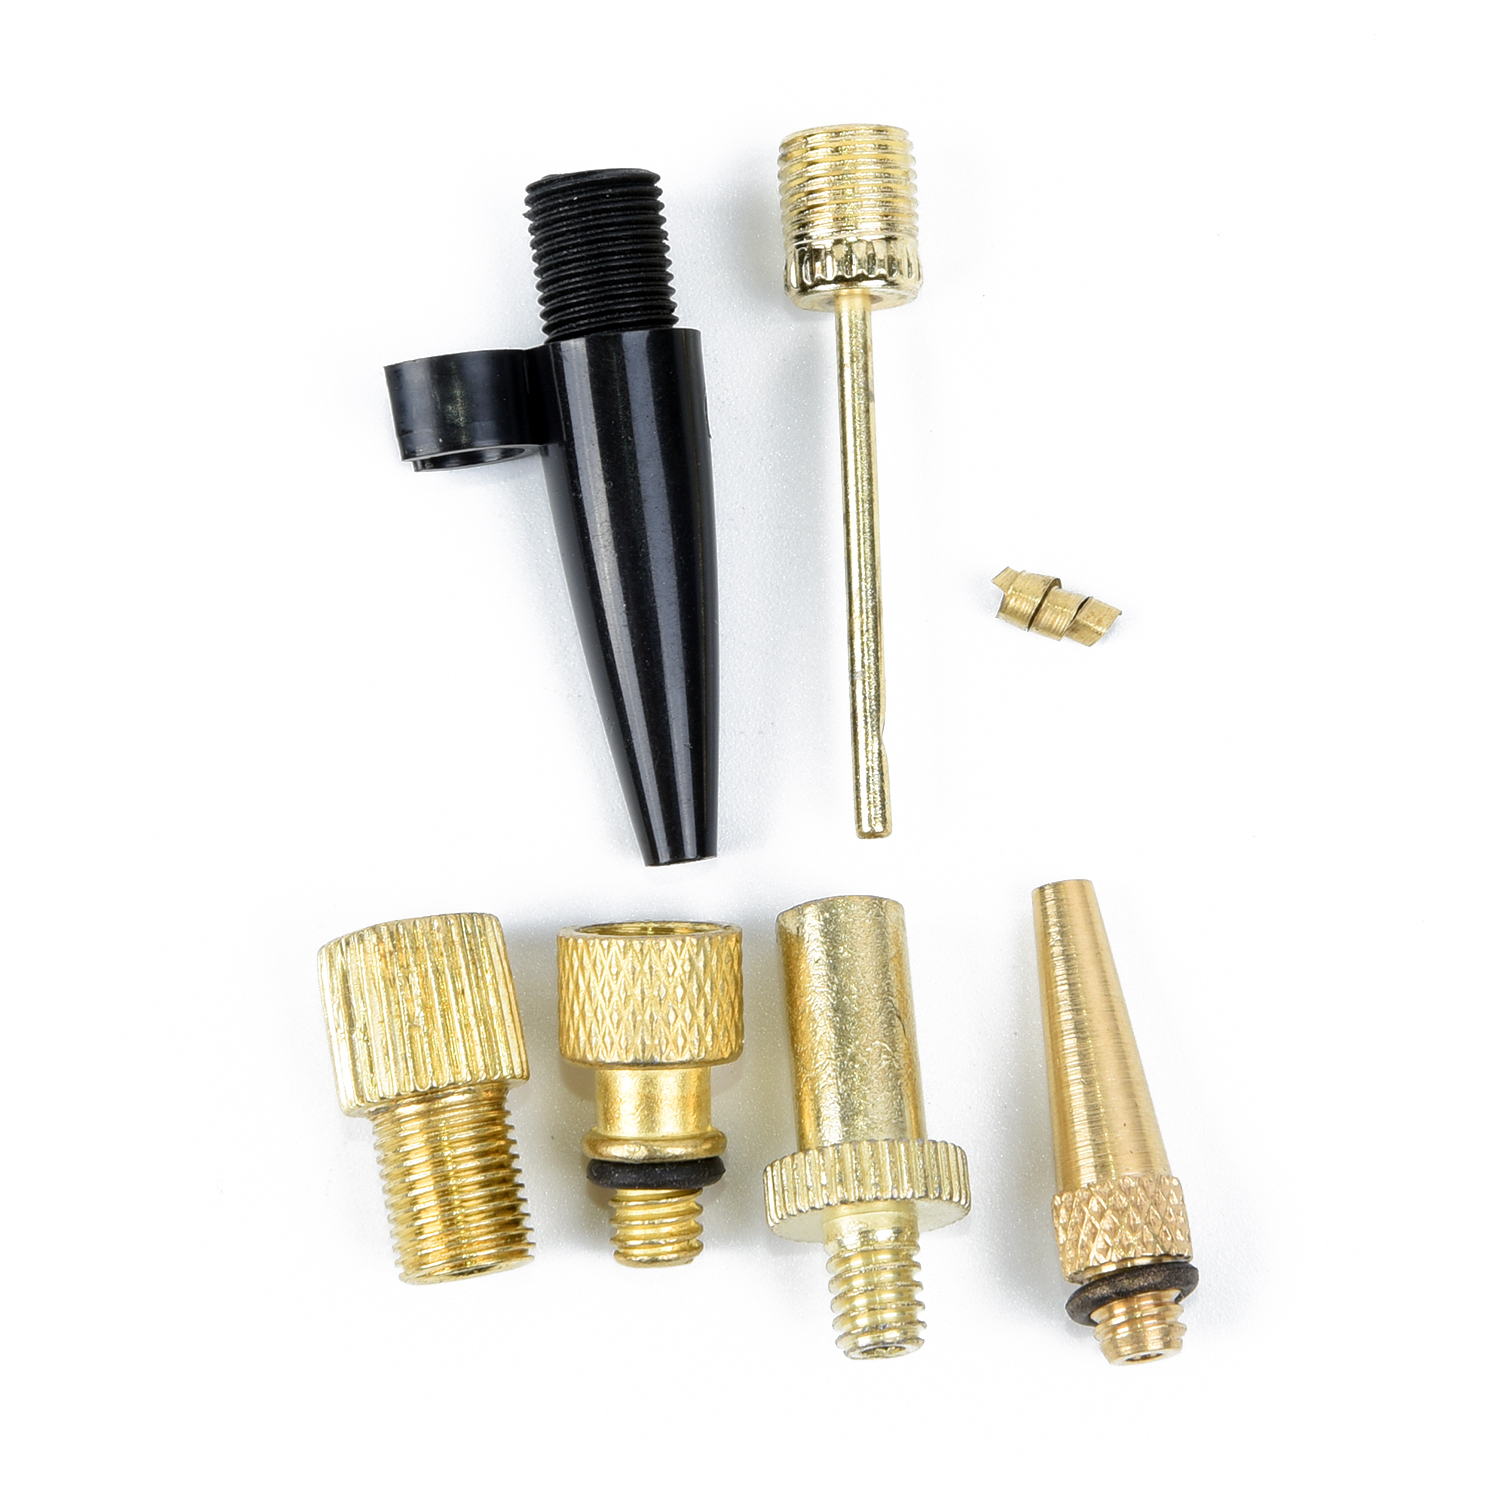 6pcs Needle Nozzle Adapter Inflatable Air Valve Ball Pump For Soccer Bike Tire